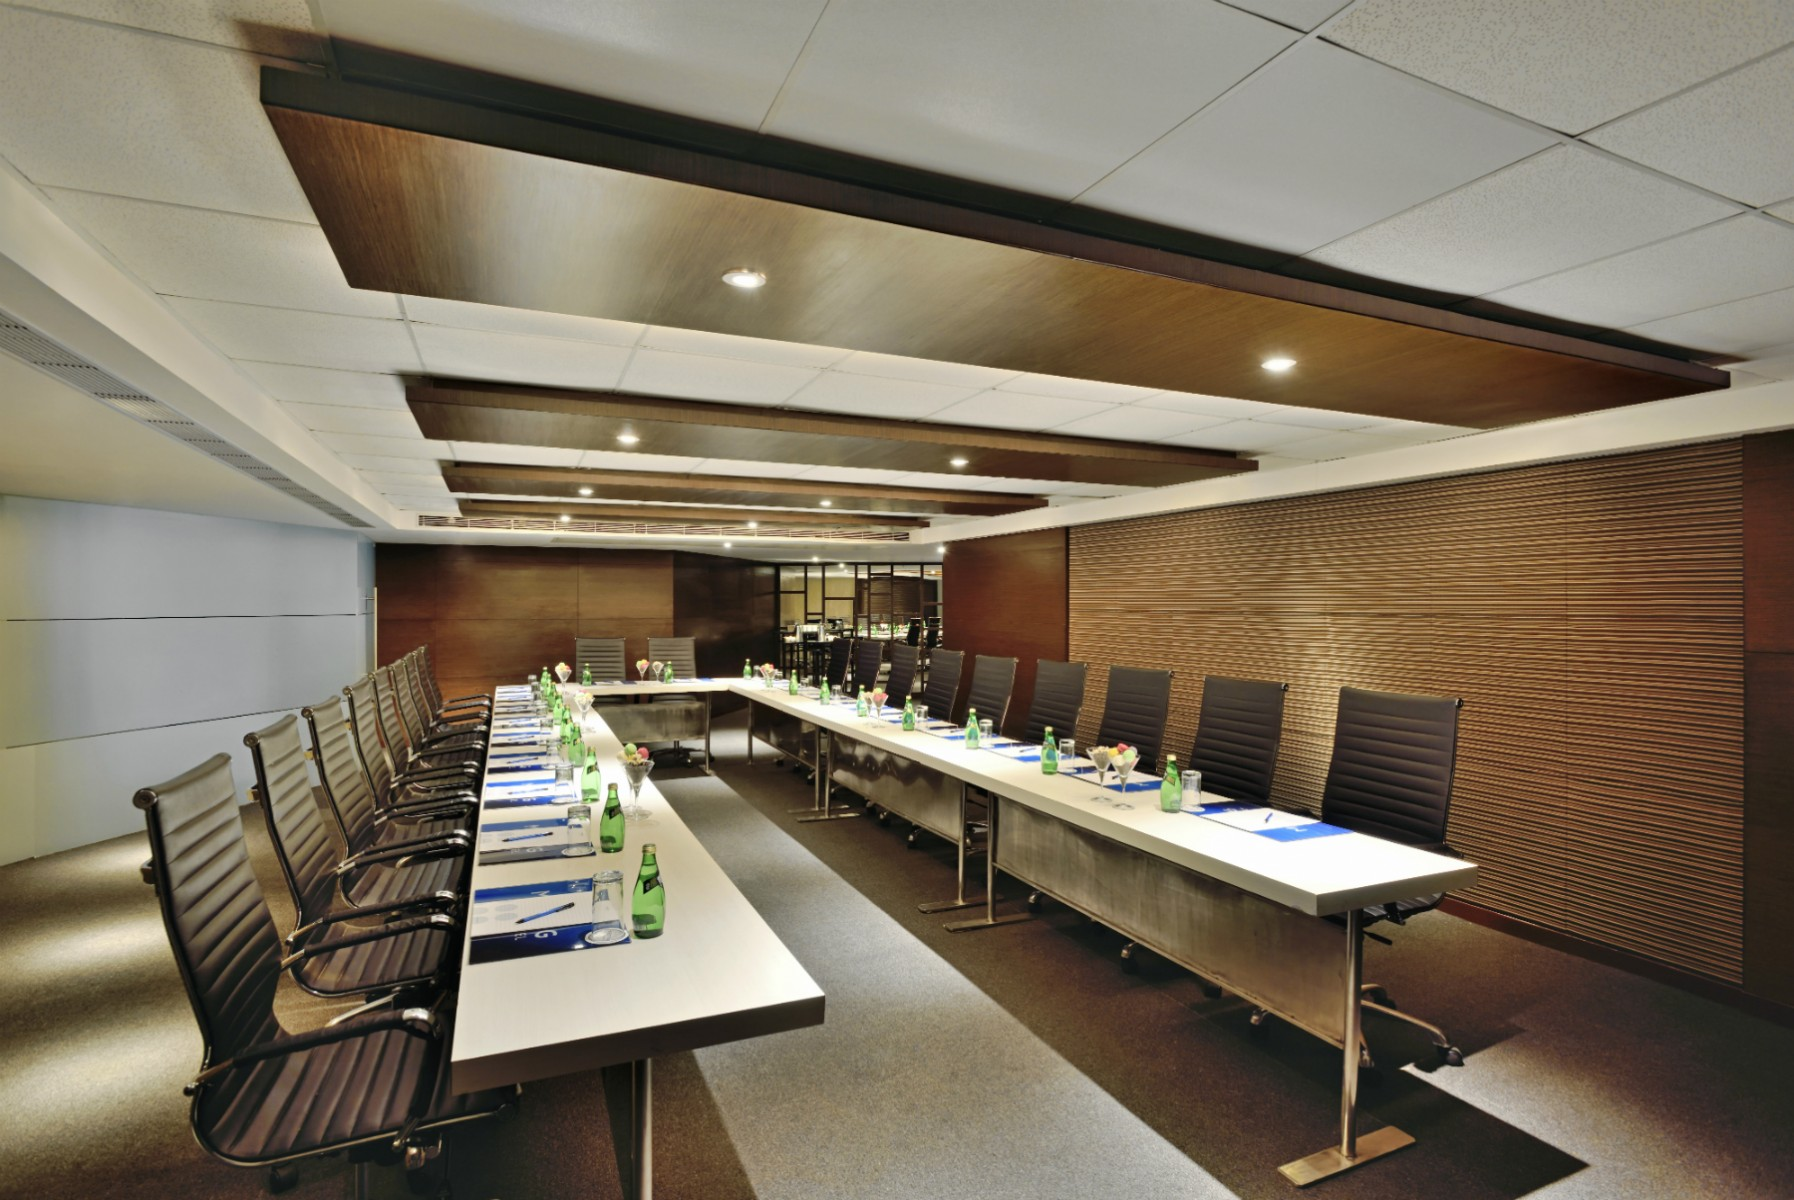 Meetings events novotel imagica khopoli 5 star resort for Nearest 5 star hotel